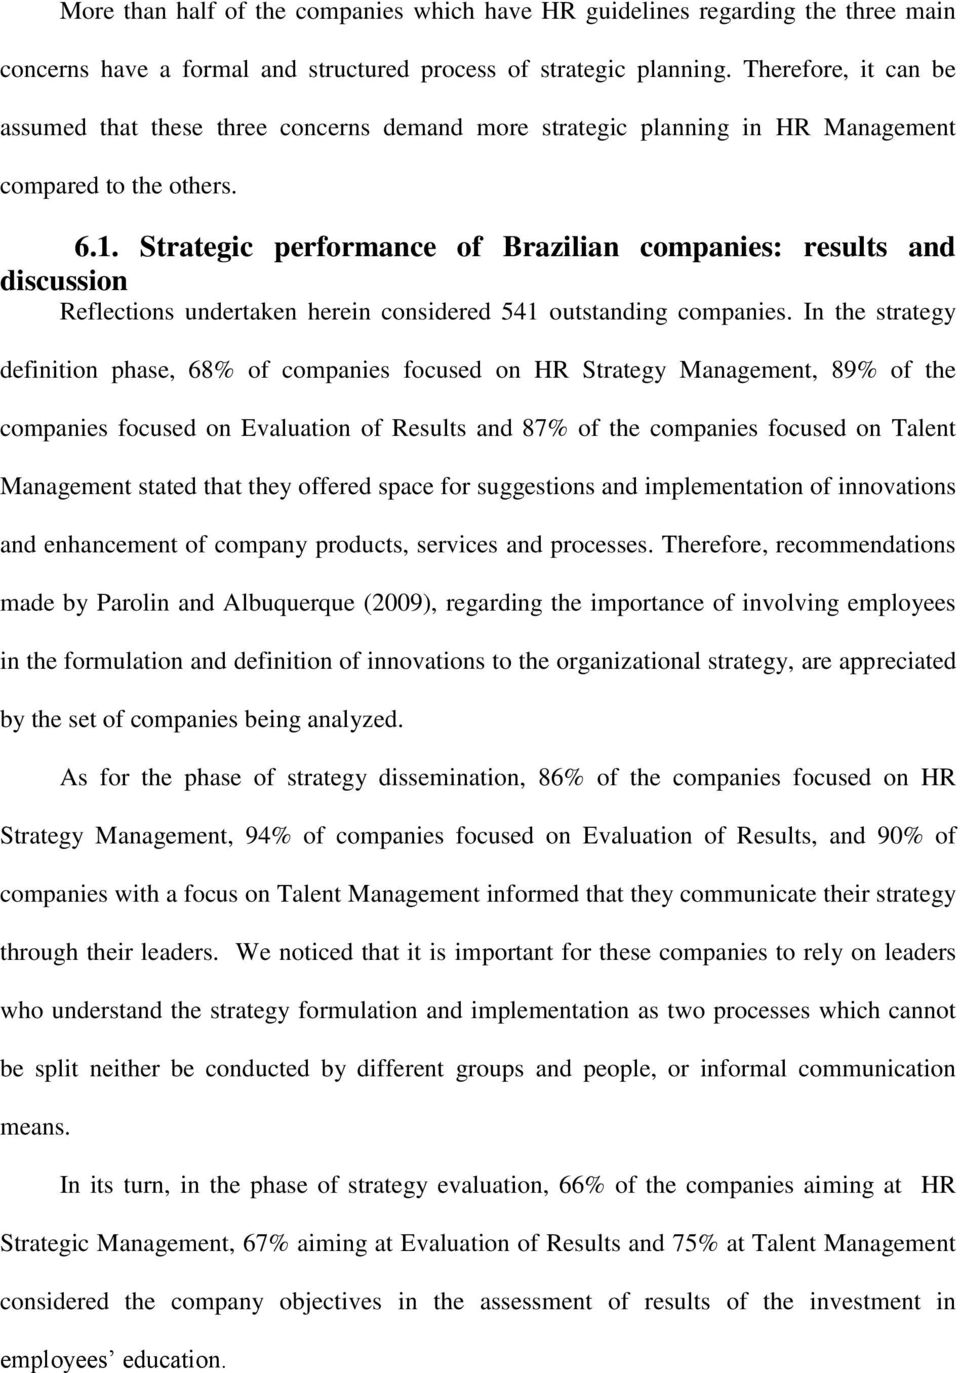 Strategic performance of Brazilian companies: results and discussion Reflections undertaken herein considered 541 outstanding companies.